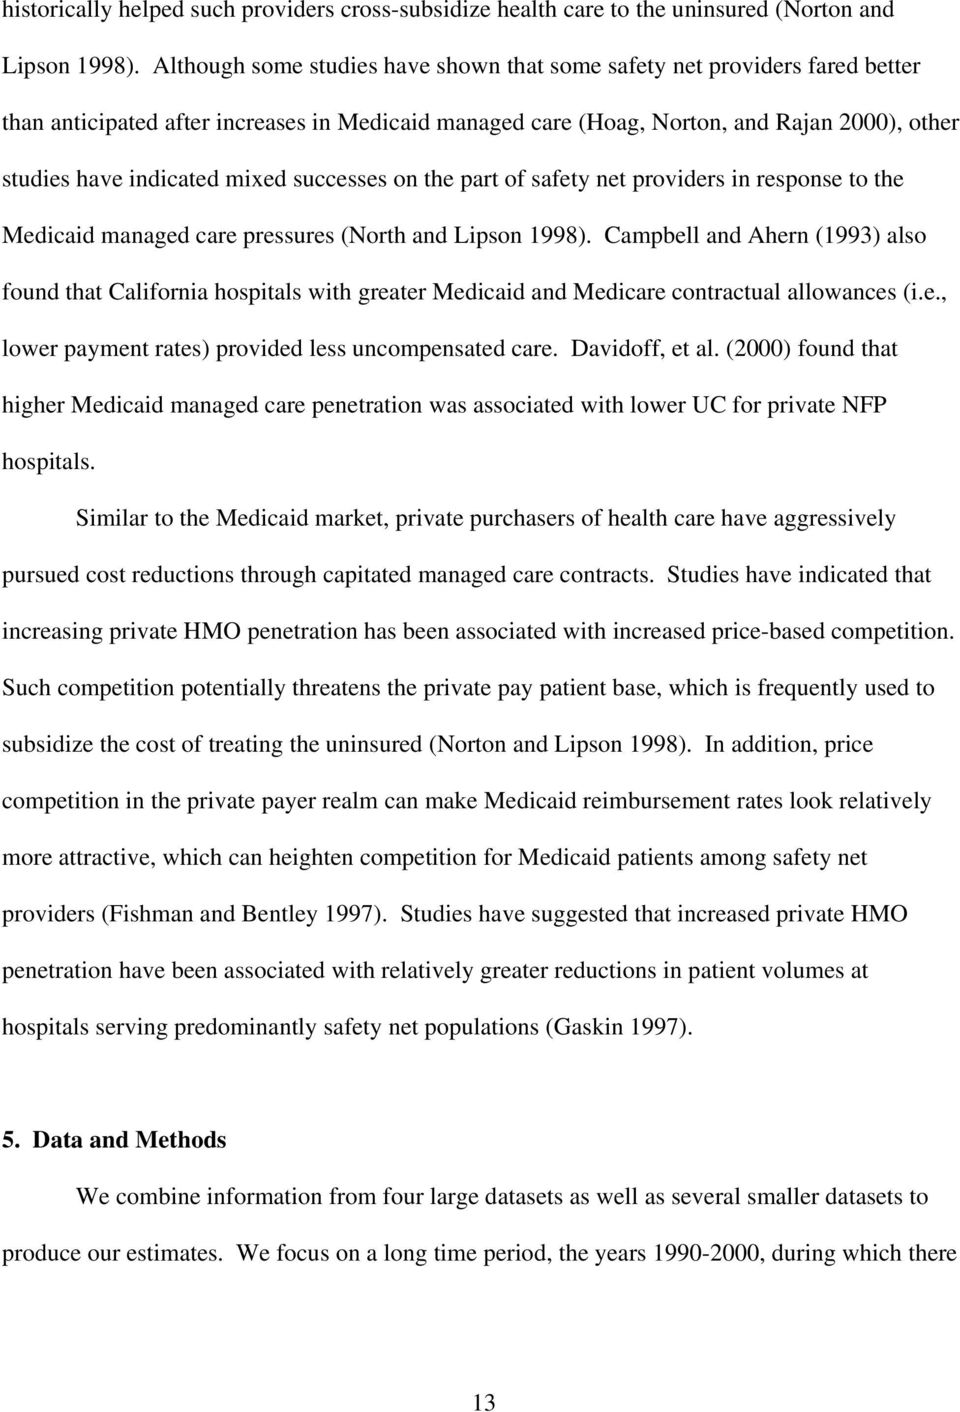 mixed successes on the part of safety net providers in response to the Medicaid managed care pressures (North and Lipson 1998).